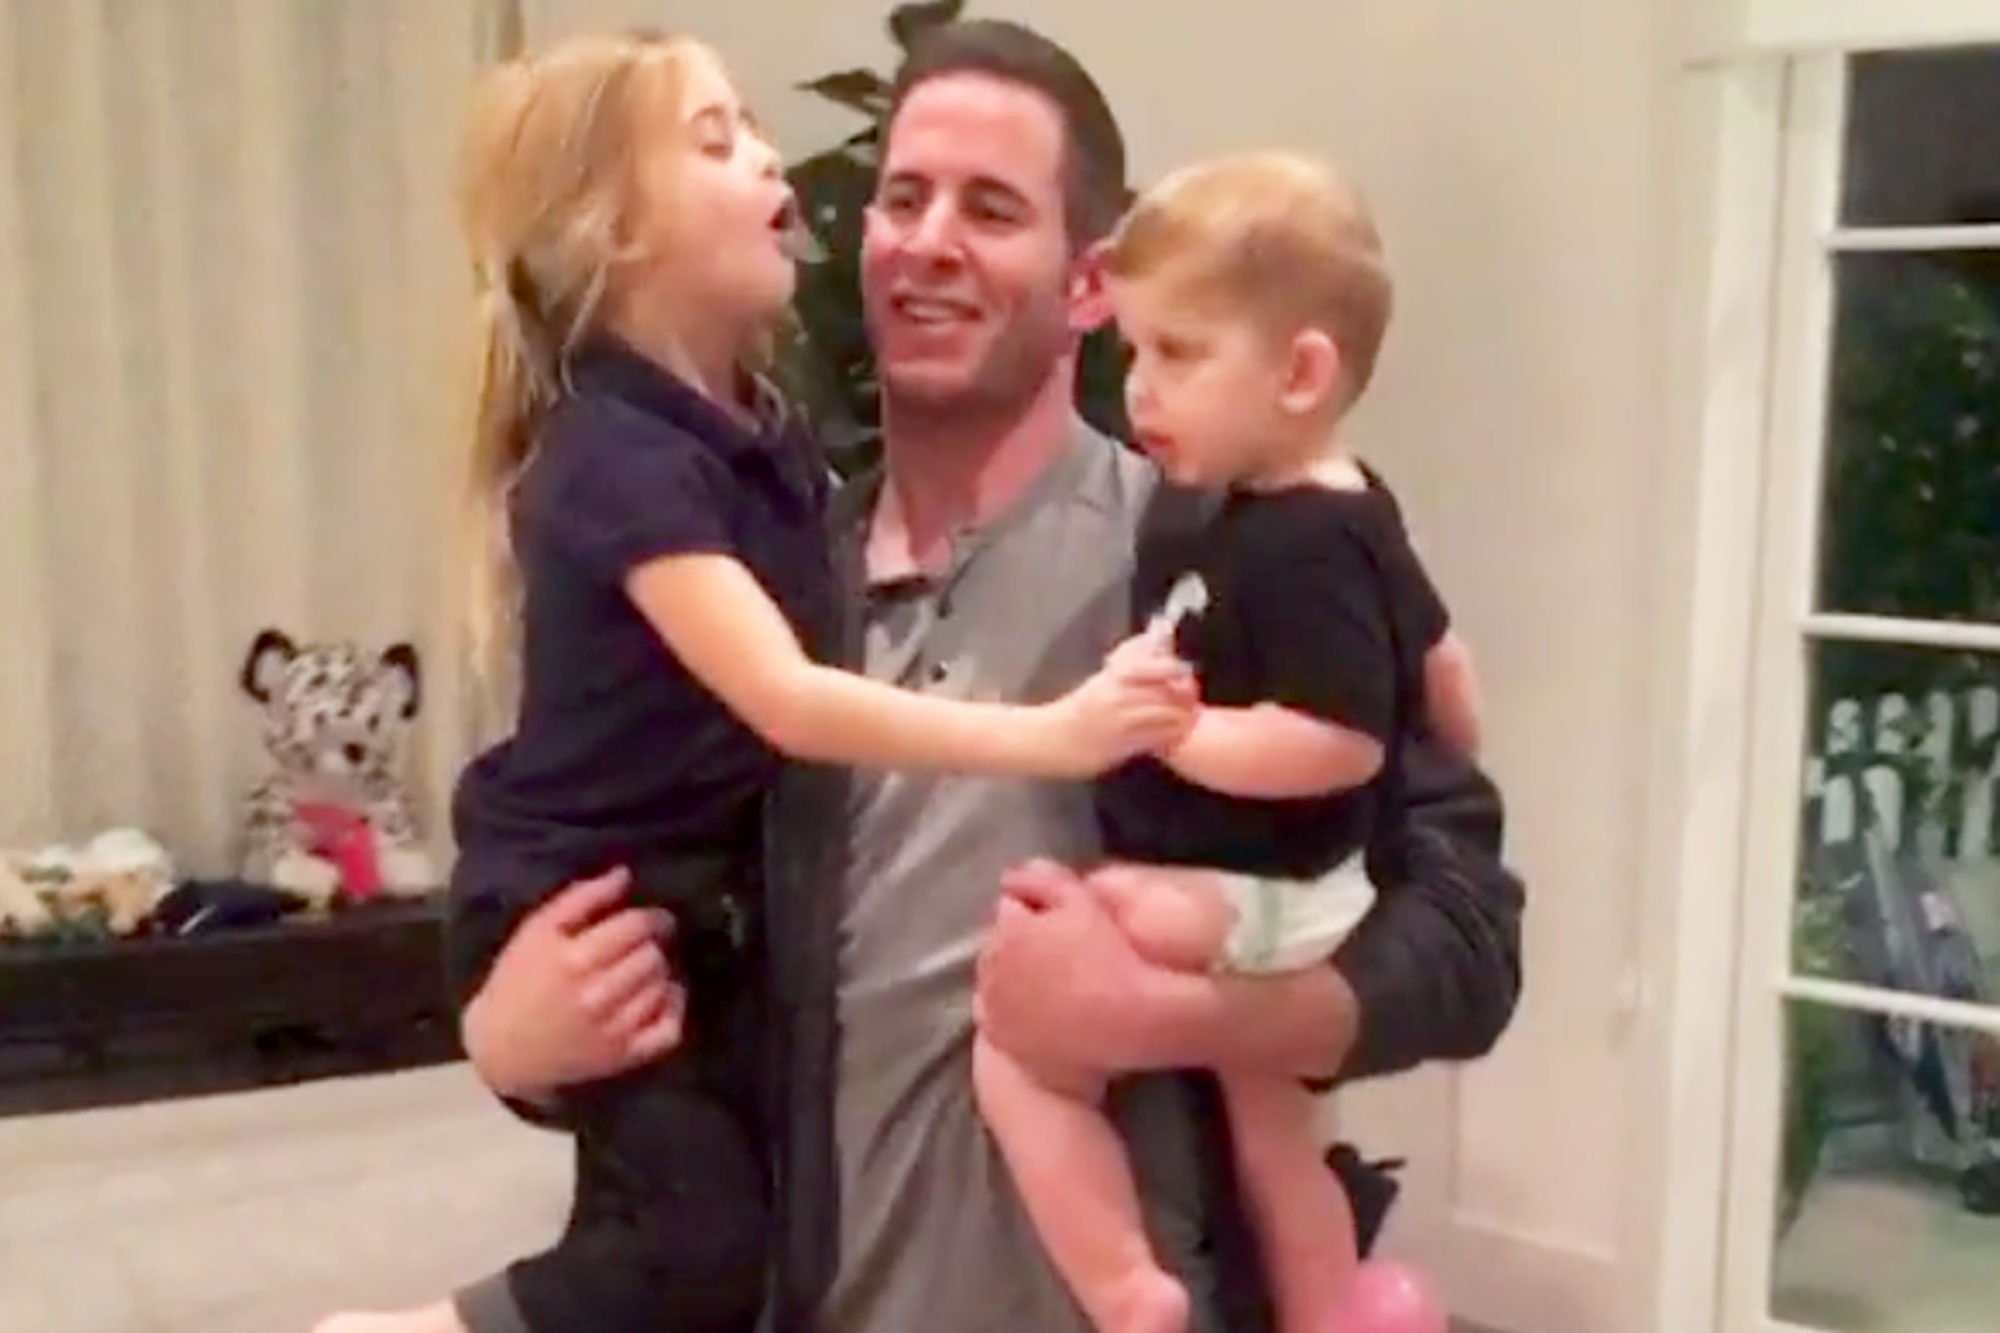 Tarek El Moussa Talks About Hardest Part Of Divorce As He Celebrates His 36th Birthday With His Kids